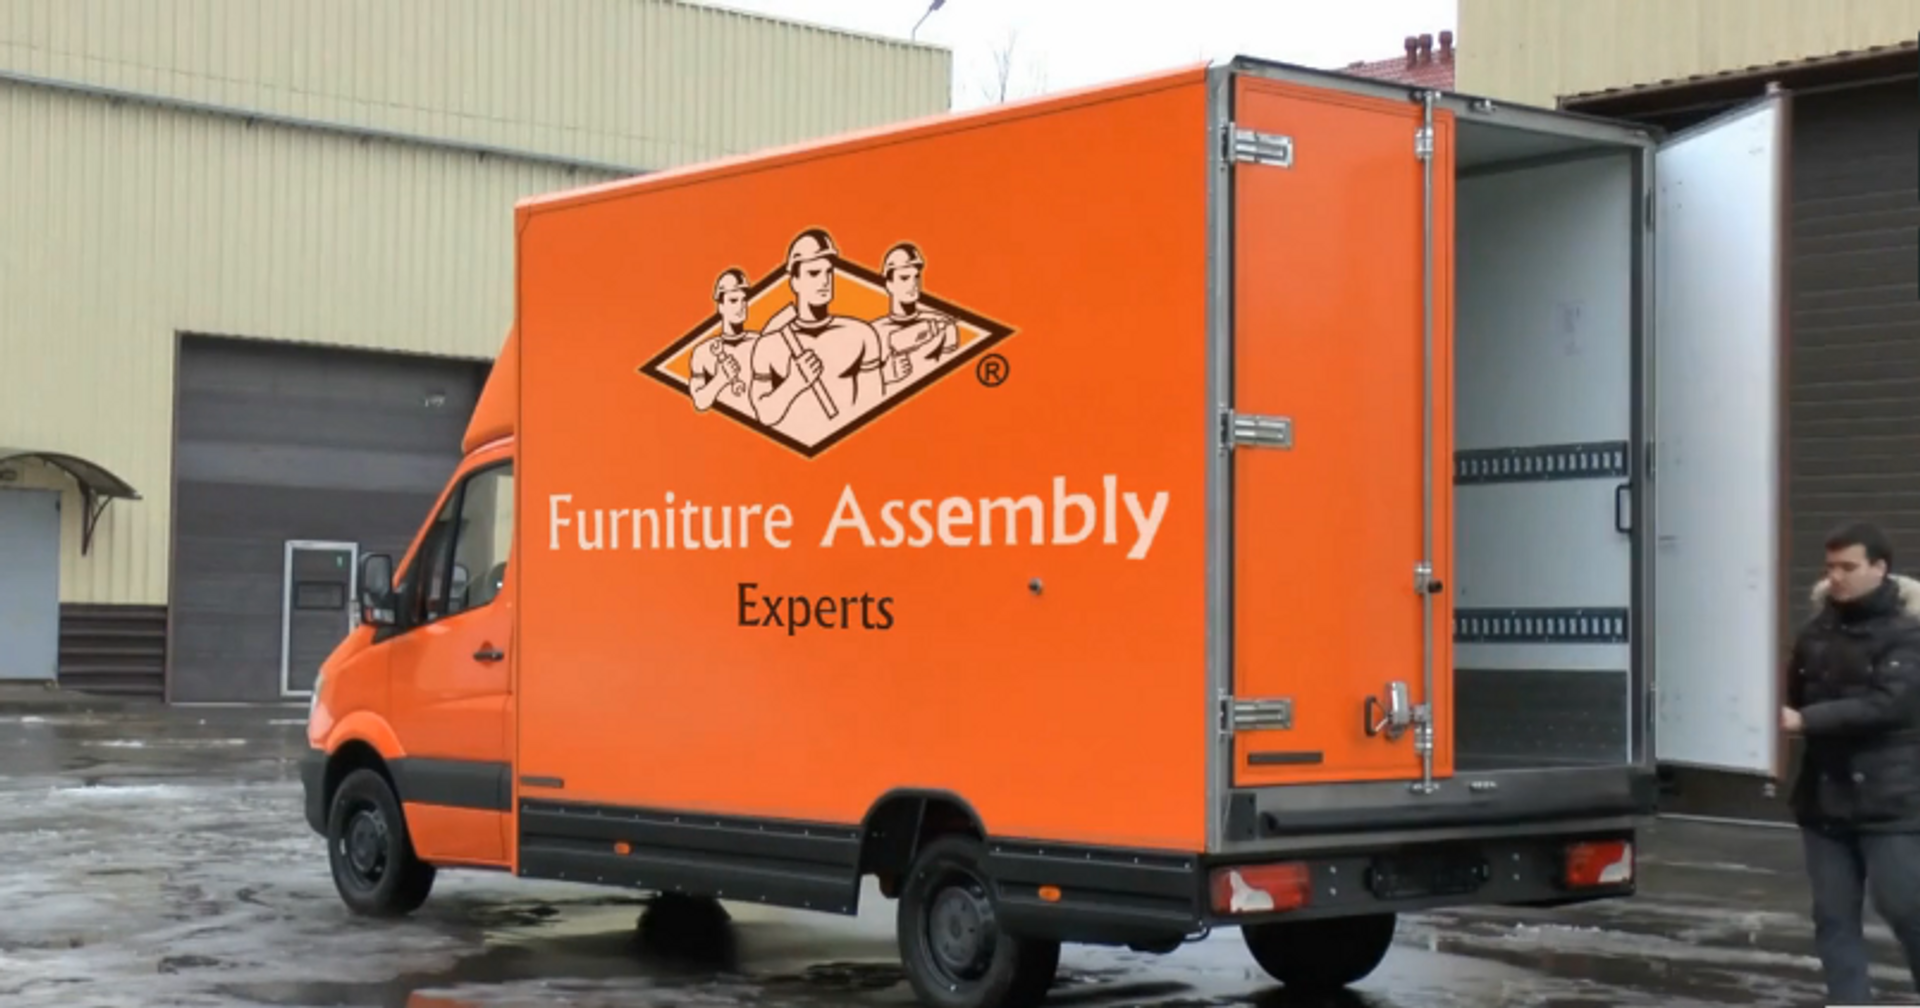 We are experts in white glove furniture delivery and installation for premium furniture. We receive deliver and install home furniture and office furniture. Get a quote today. Submit a request online